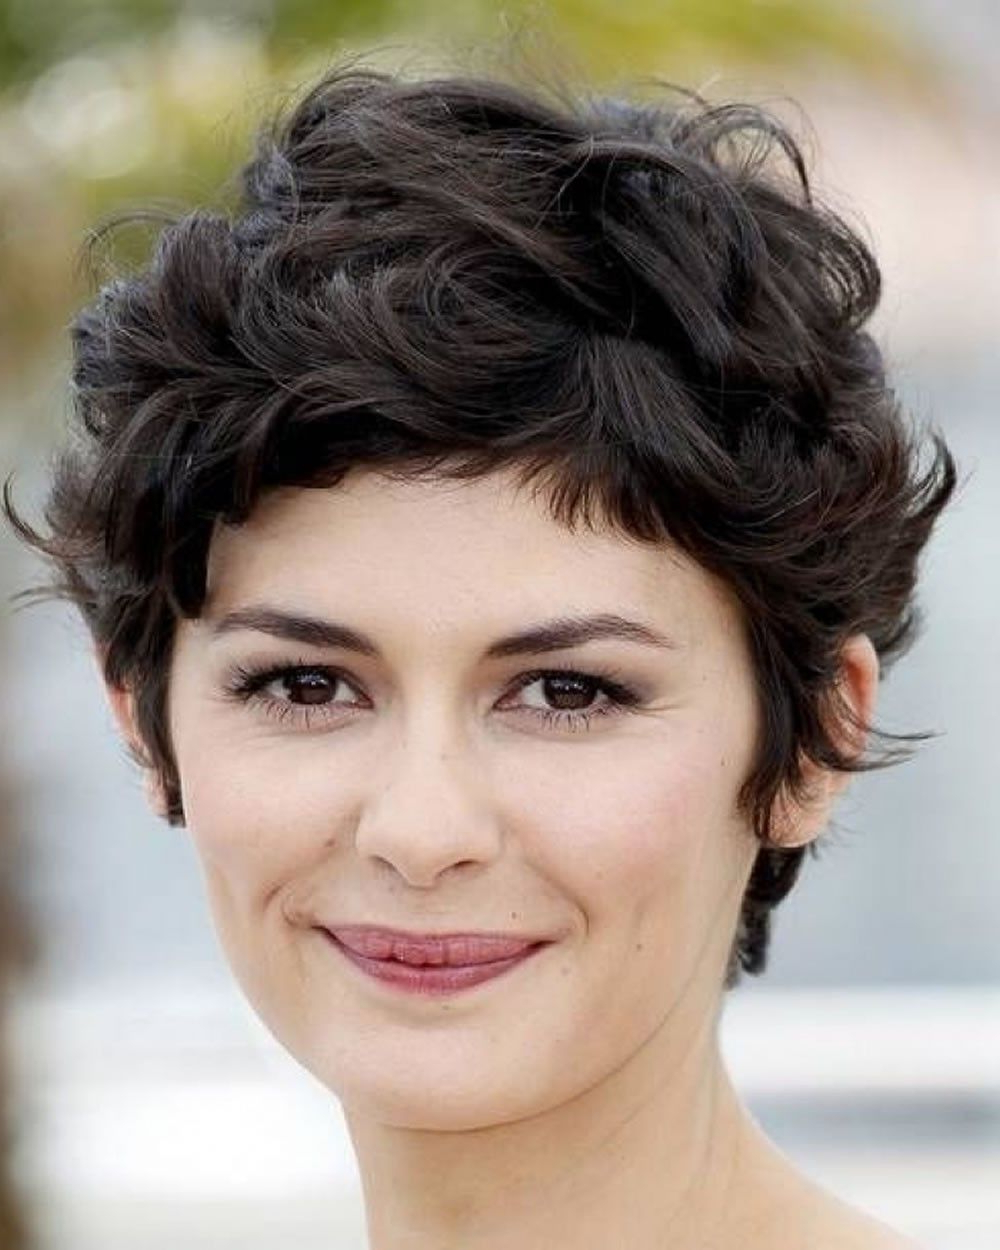 Image Result For Short Haircuts For Round Faces And Thin Hair 2018 Intended For Short Haircuts For Round Faces And Thick Hair (View 11 of 25)